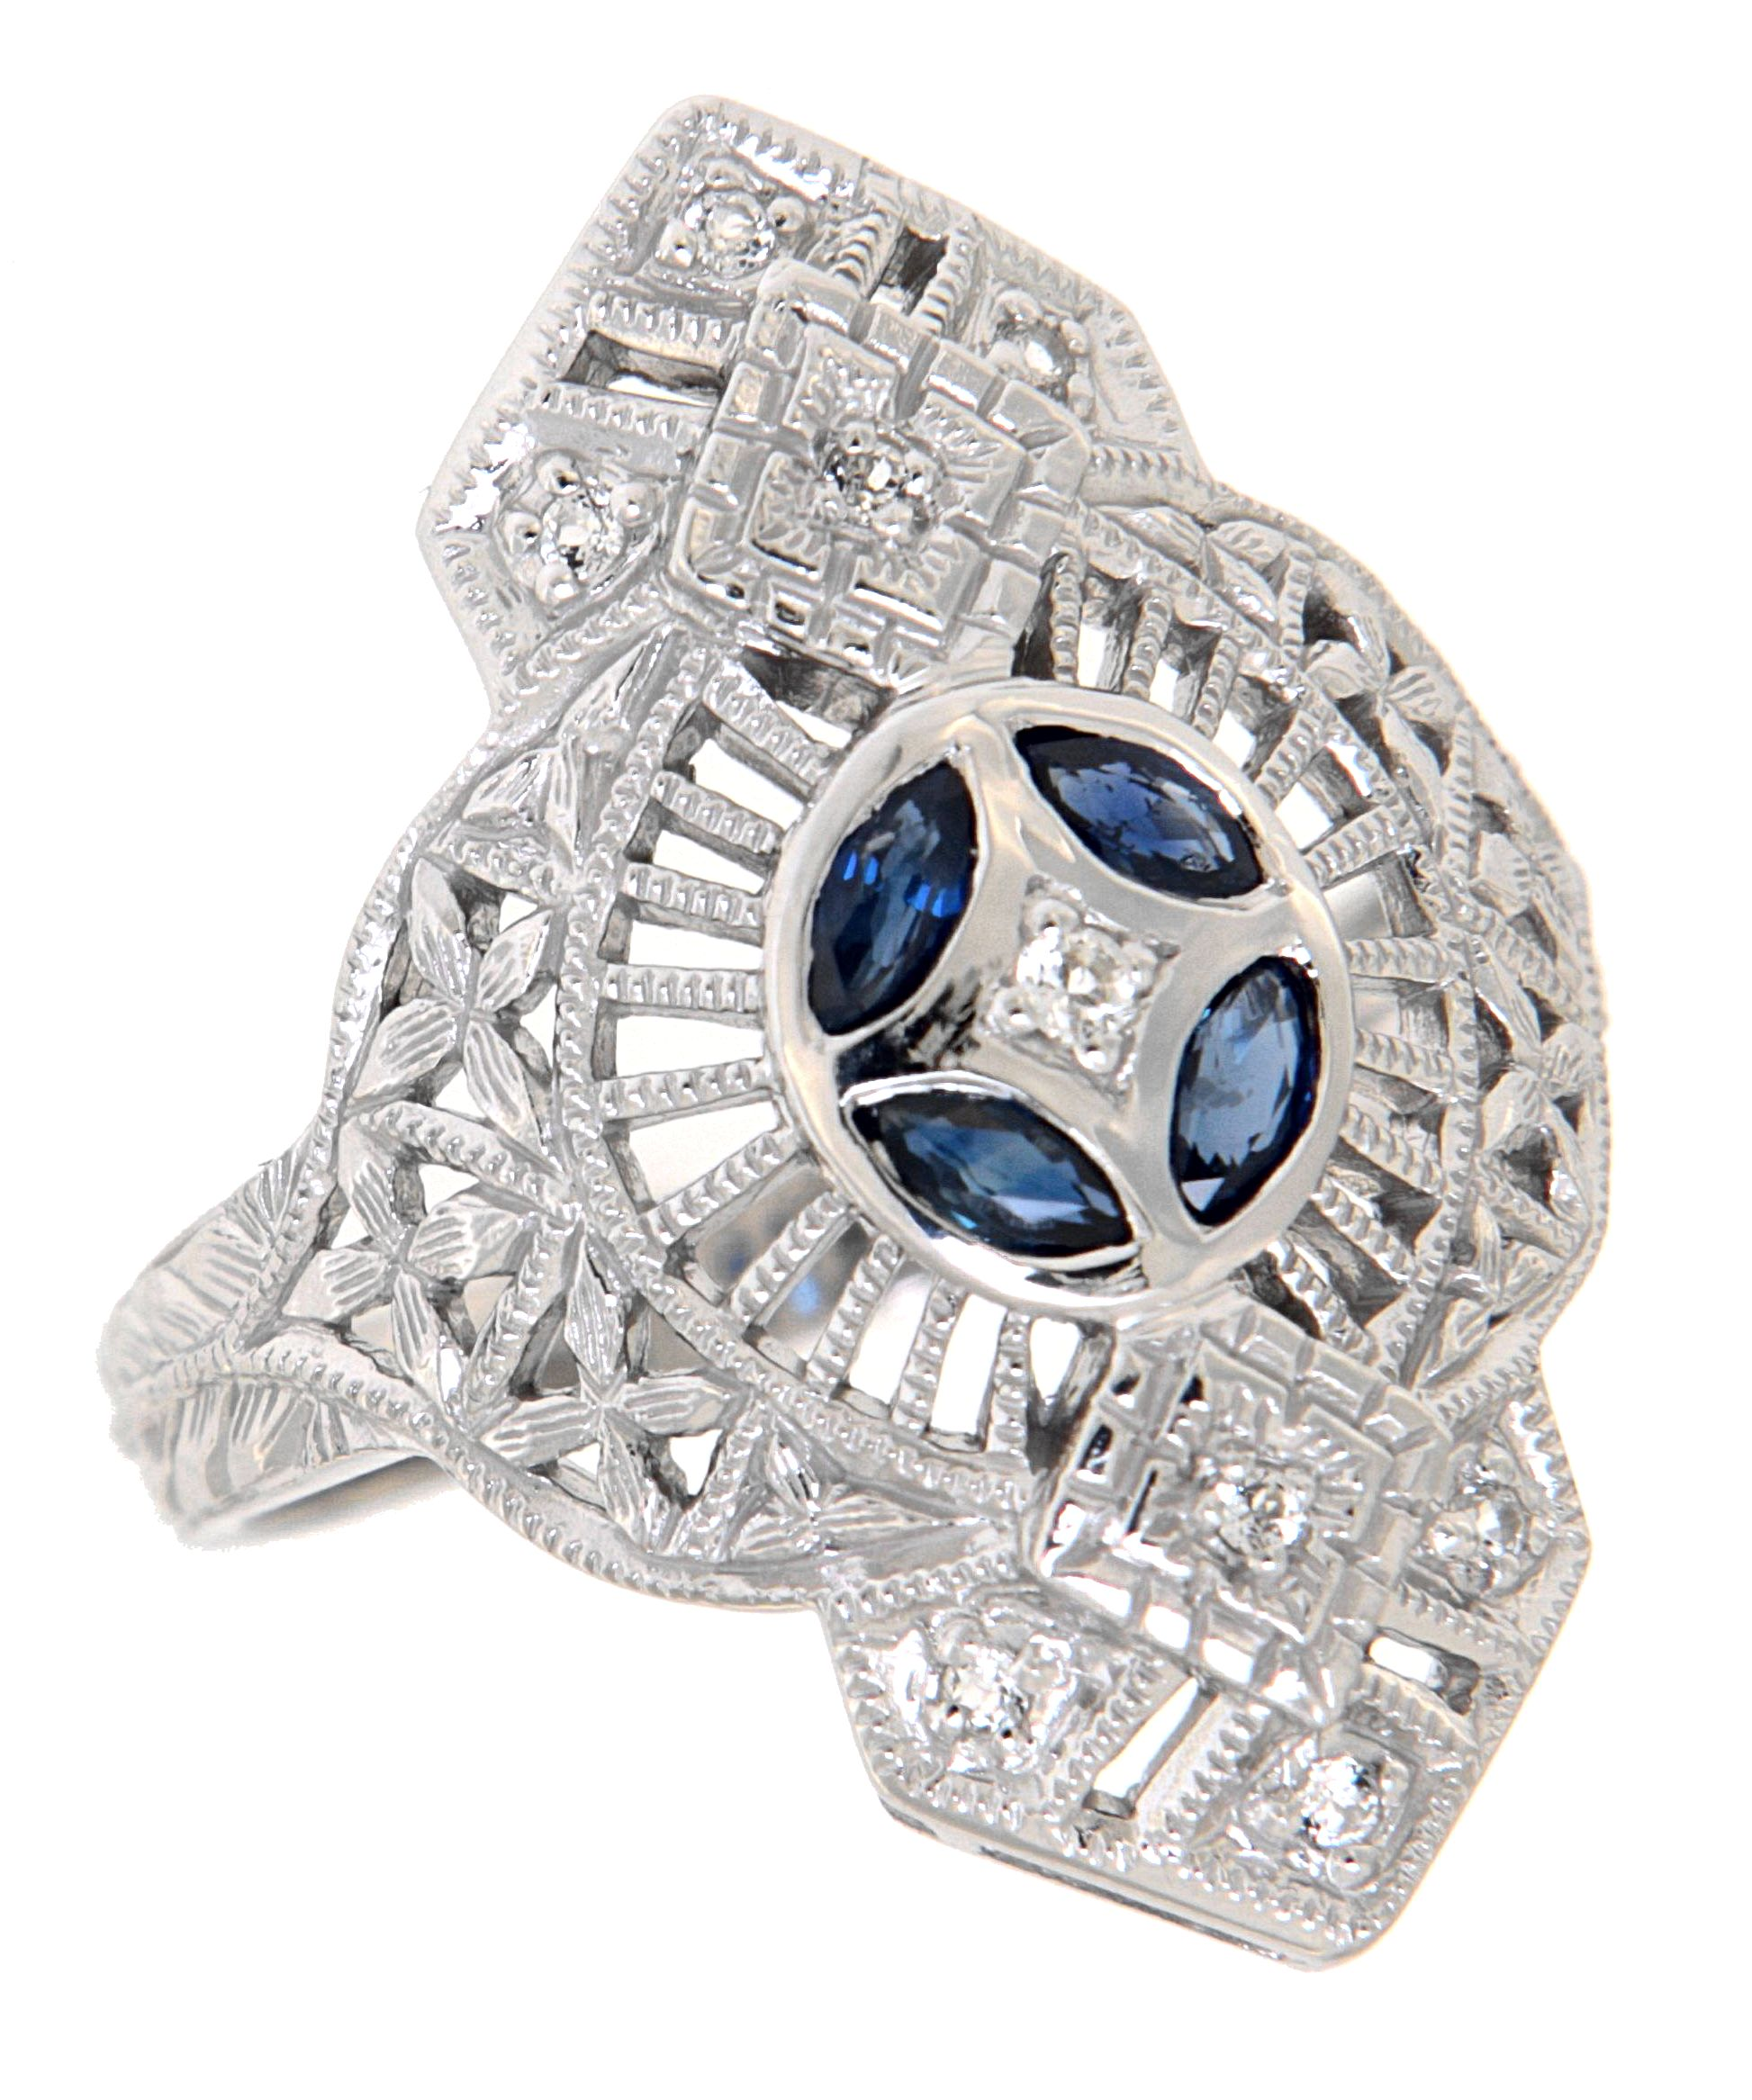 8b8b505a1 Antique Style Jewelry and Gifts Art Deco Filigree Ring White Topaz Blue  Sapphire Accents Sterling Silver - FR-291